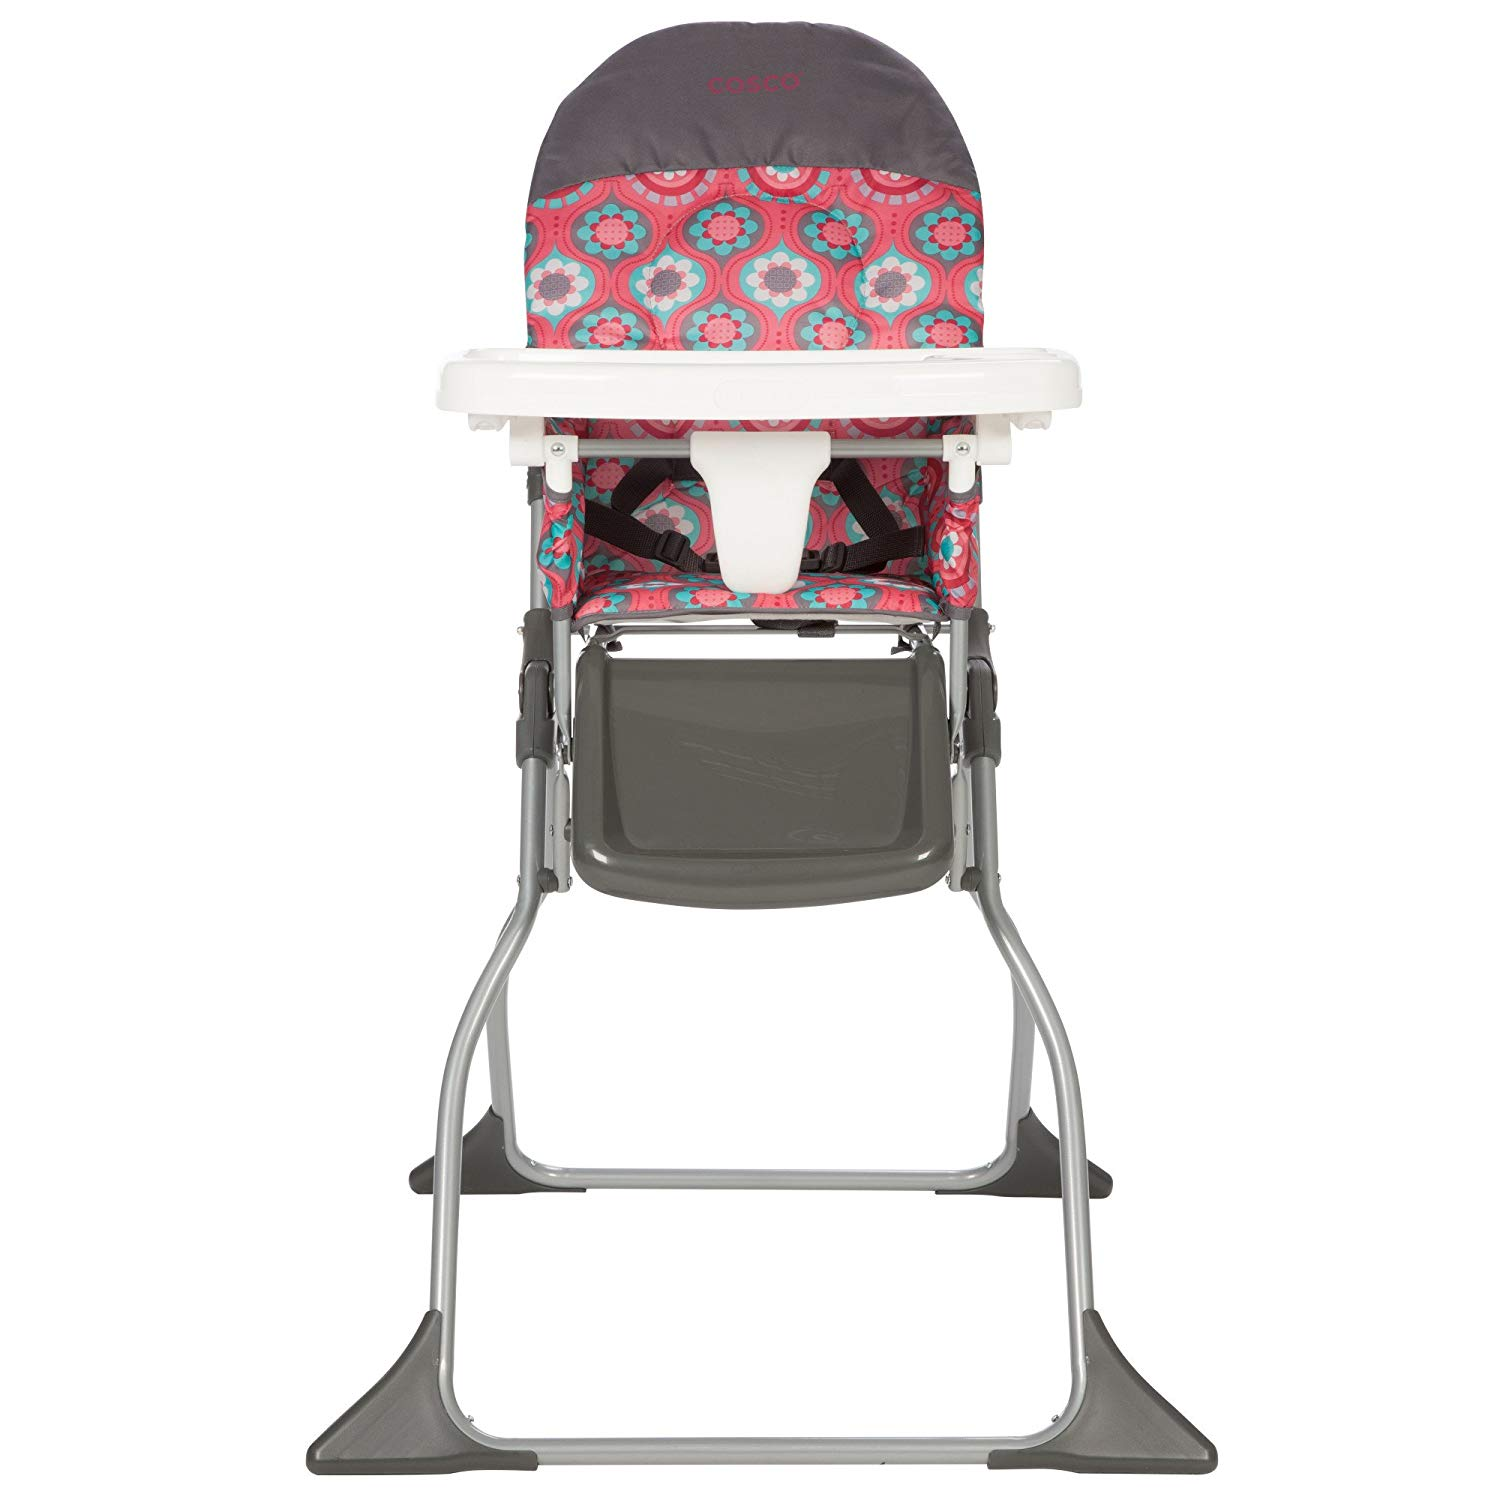 Best Camping High Chair For Babies 2019 Buyer S Guide